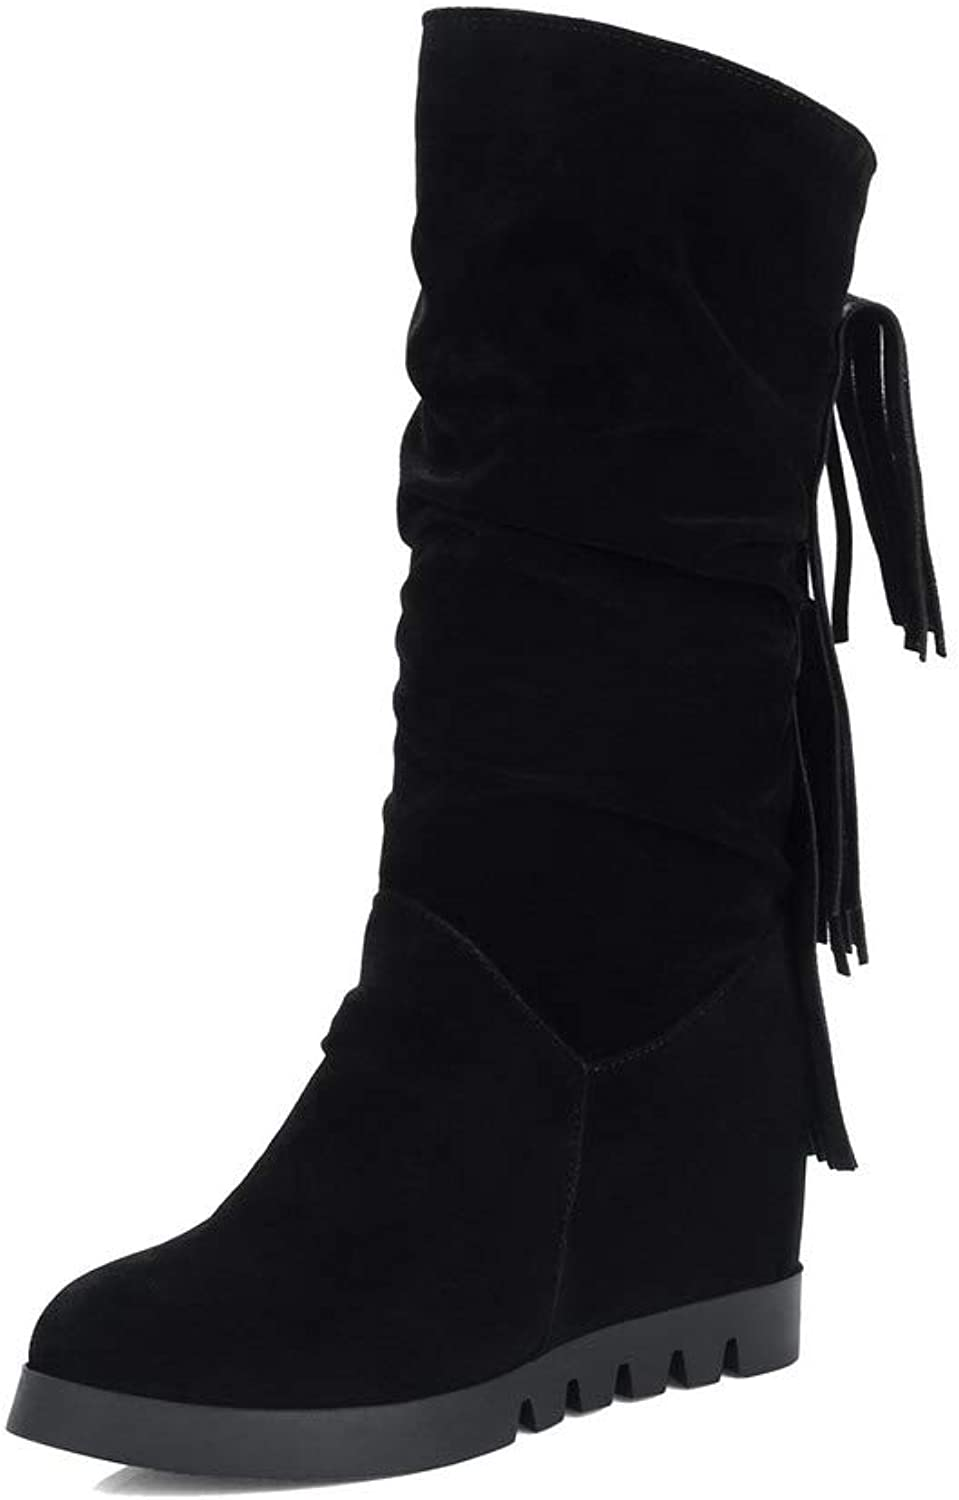 AllhqFashion Women's Low-Top Pull-On Frosted High-Heels Closed-Toe Boots, FBUXD027887